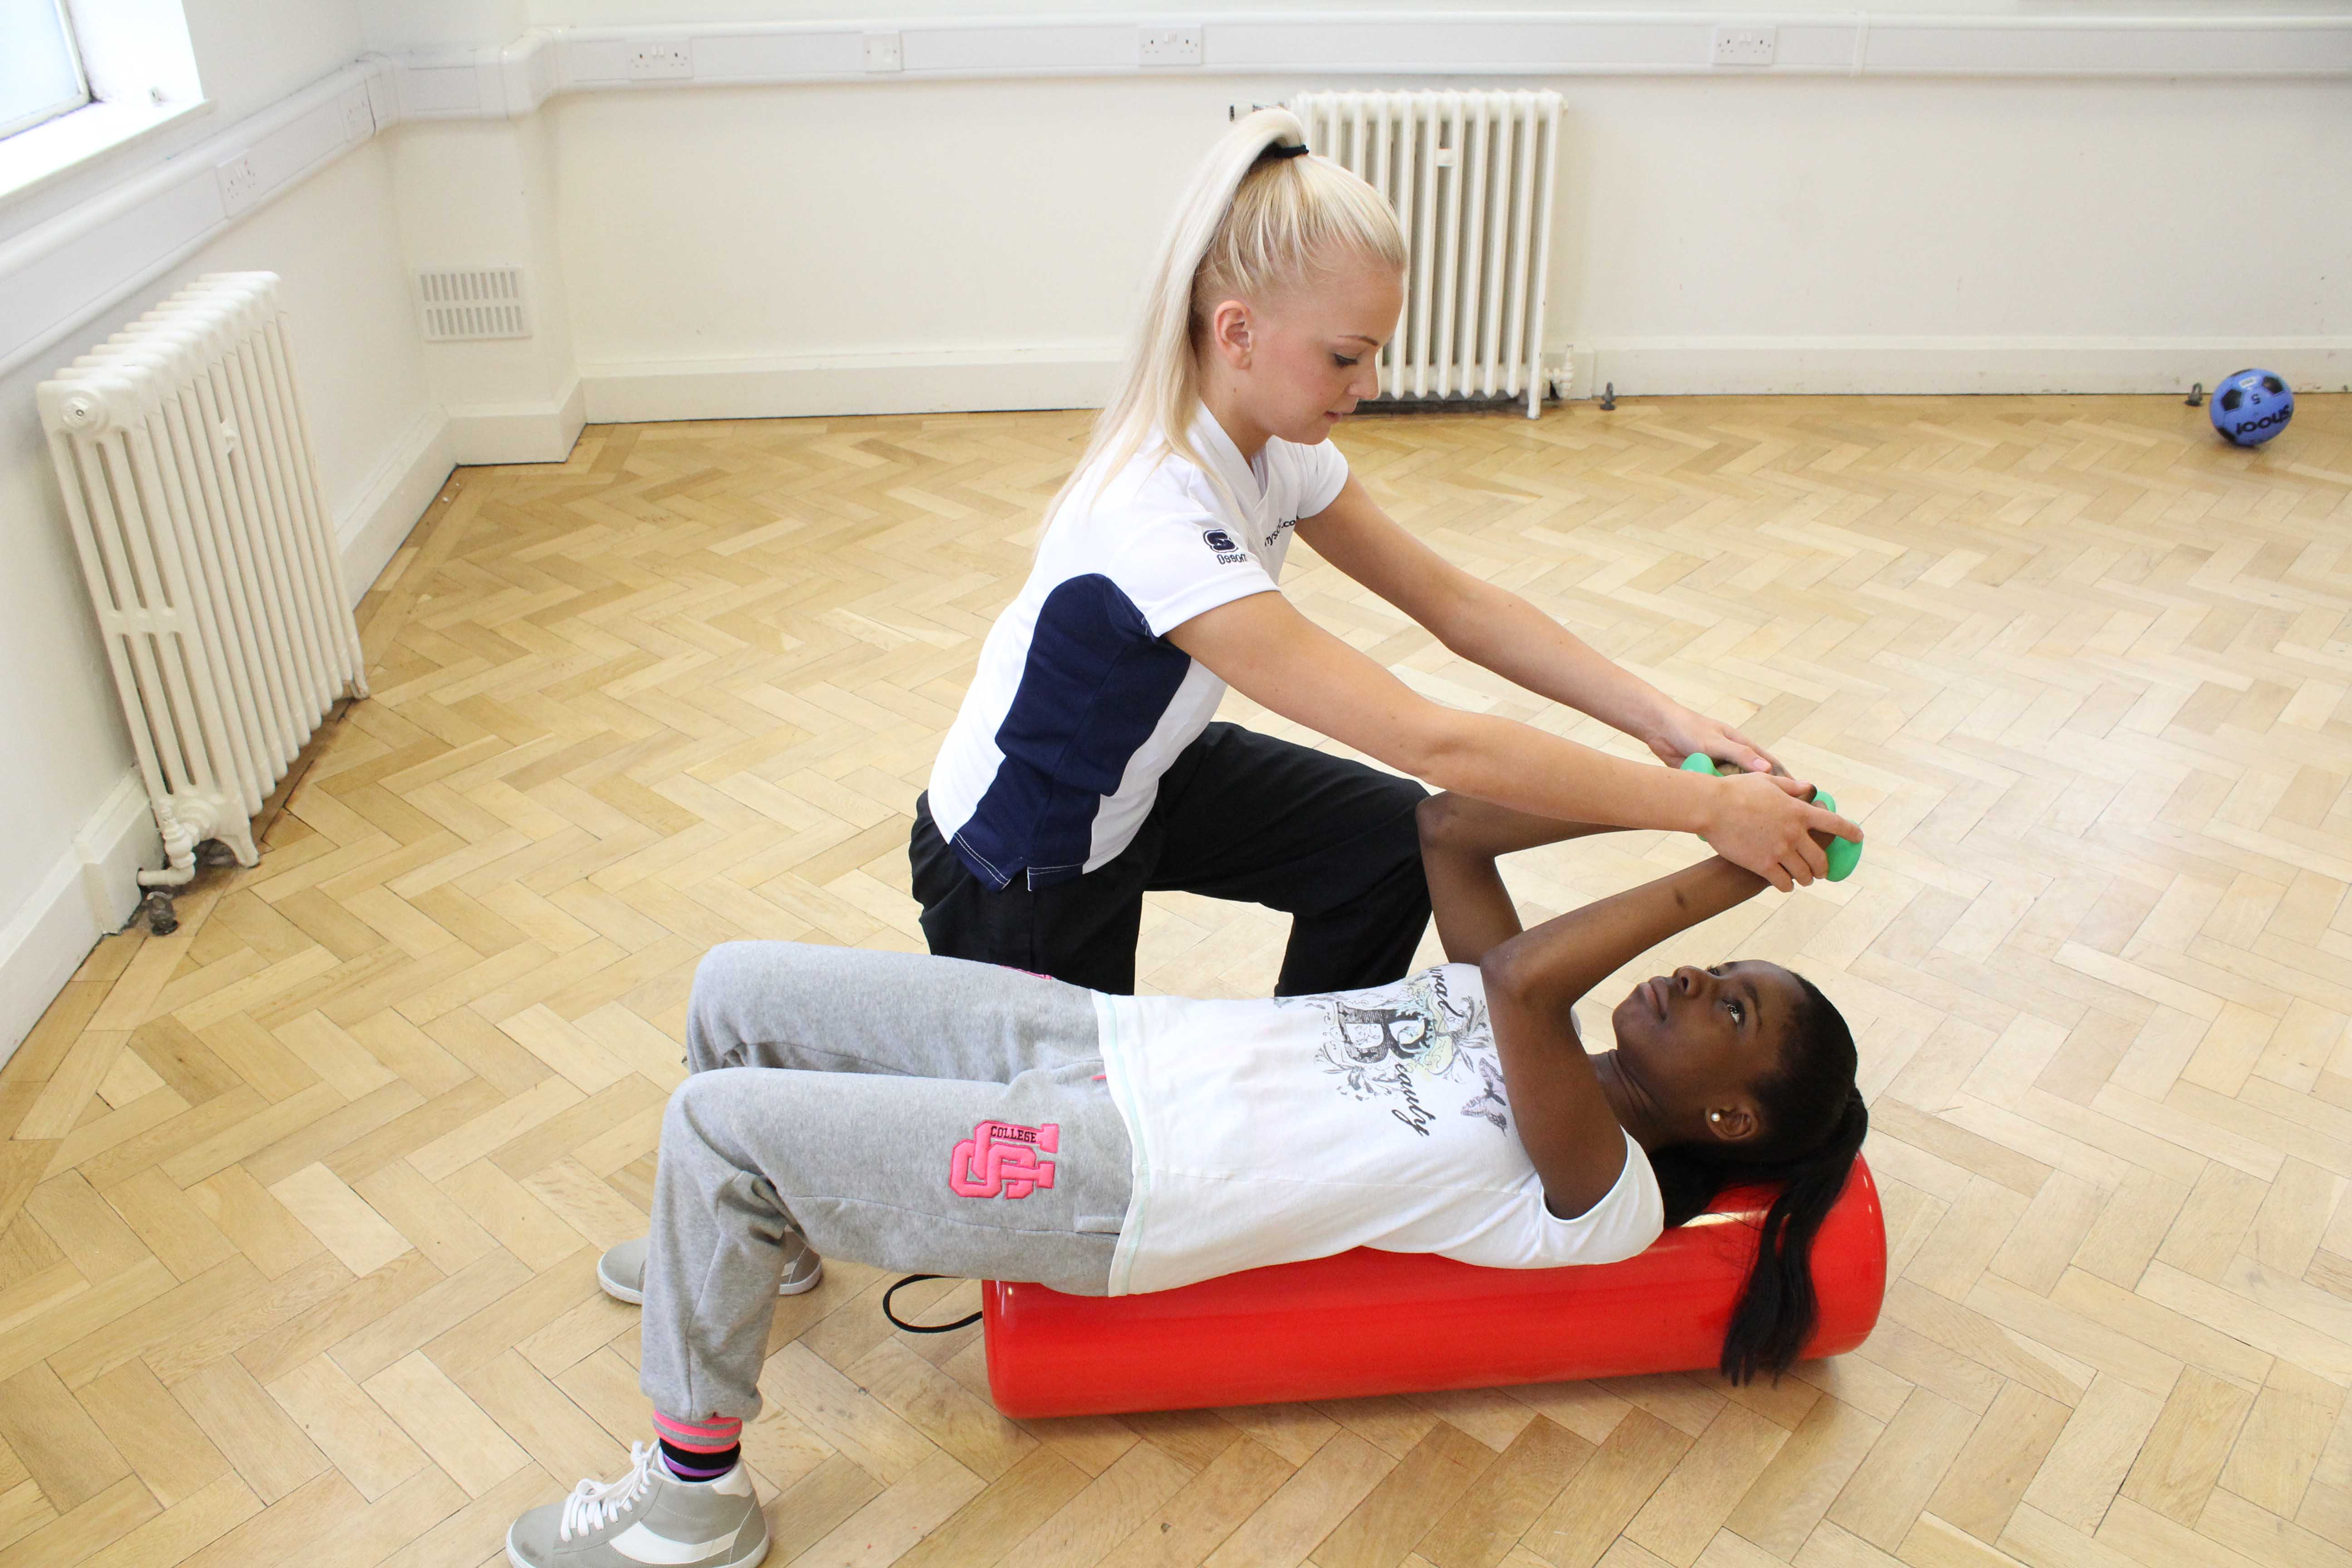 Building strength, co-ordination and balance under supervision of a paediatric physiotherapist